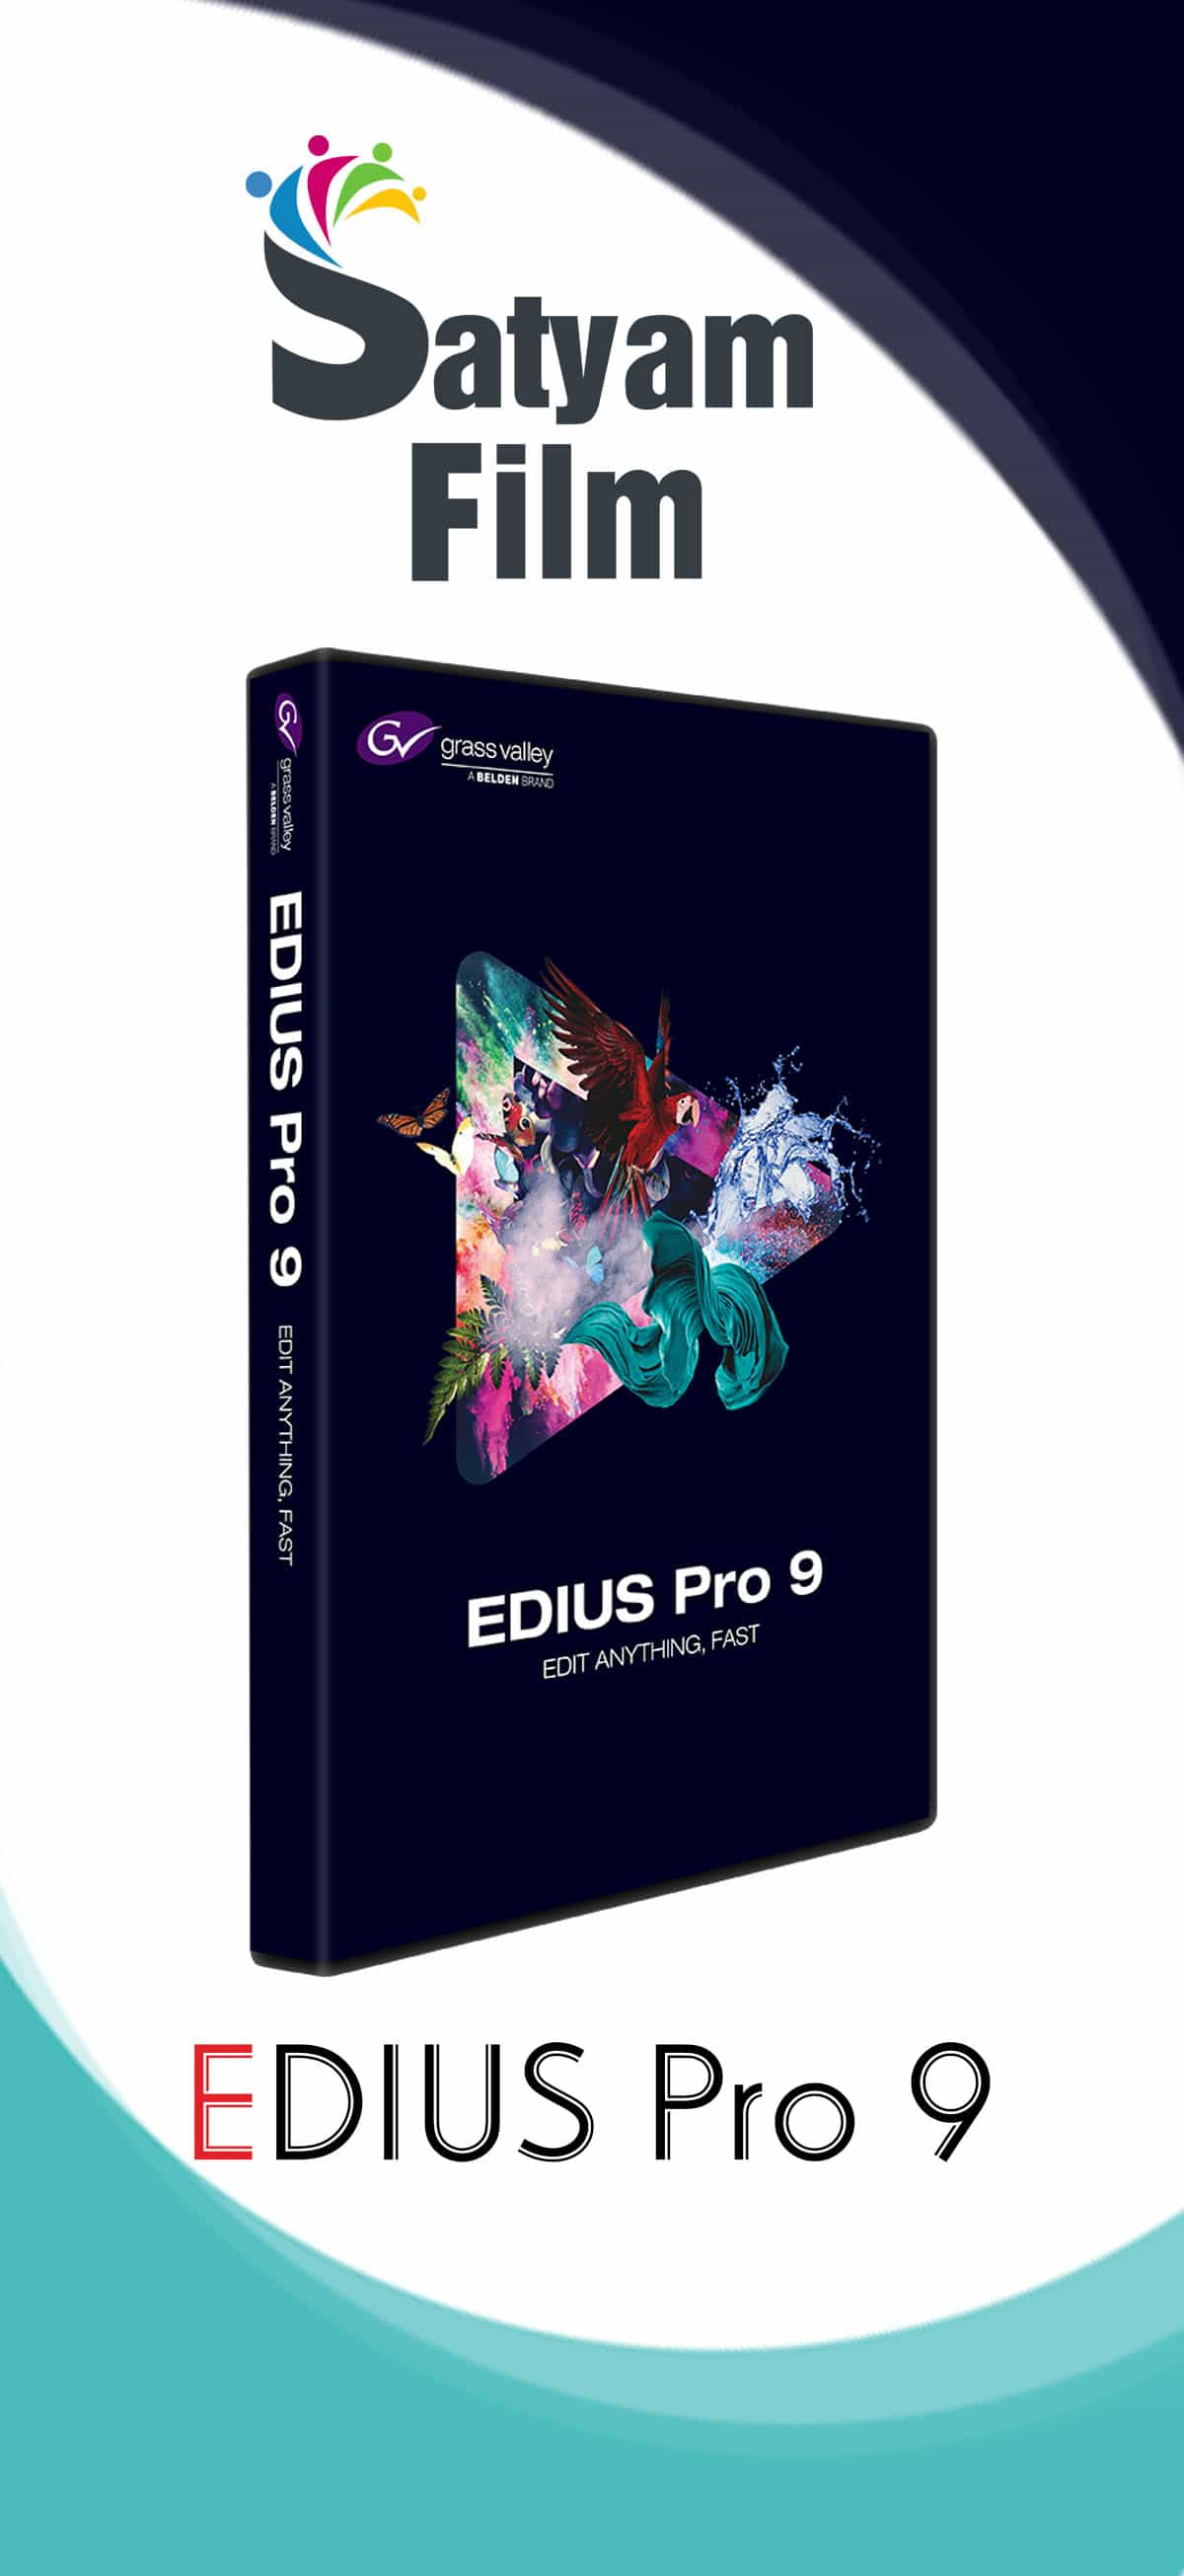 EDIUS 9, Kartmy, Satyam Film, EDIUS 9, Edius 9 Crack, Edius 9 Project, Edius 9 Wedding Project, Grass Valley, Edius 8 Crack, Satyam Film, EDIUS Data, EDIUS DOngle, EDIUS 8 Crack, Satyam Film, Weding Projects Developer, Wedding Project, Effect, Wedding Effects, Adobe After Effects Wedding Projects, After Effects Cinematic Wedding Projects